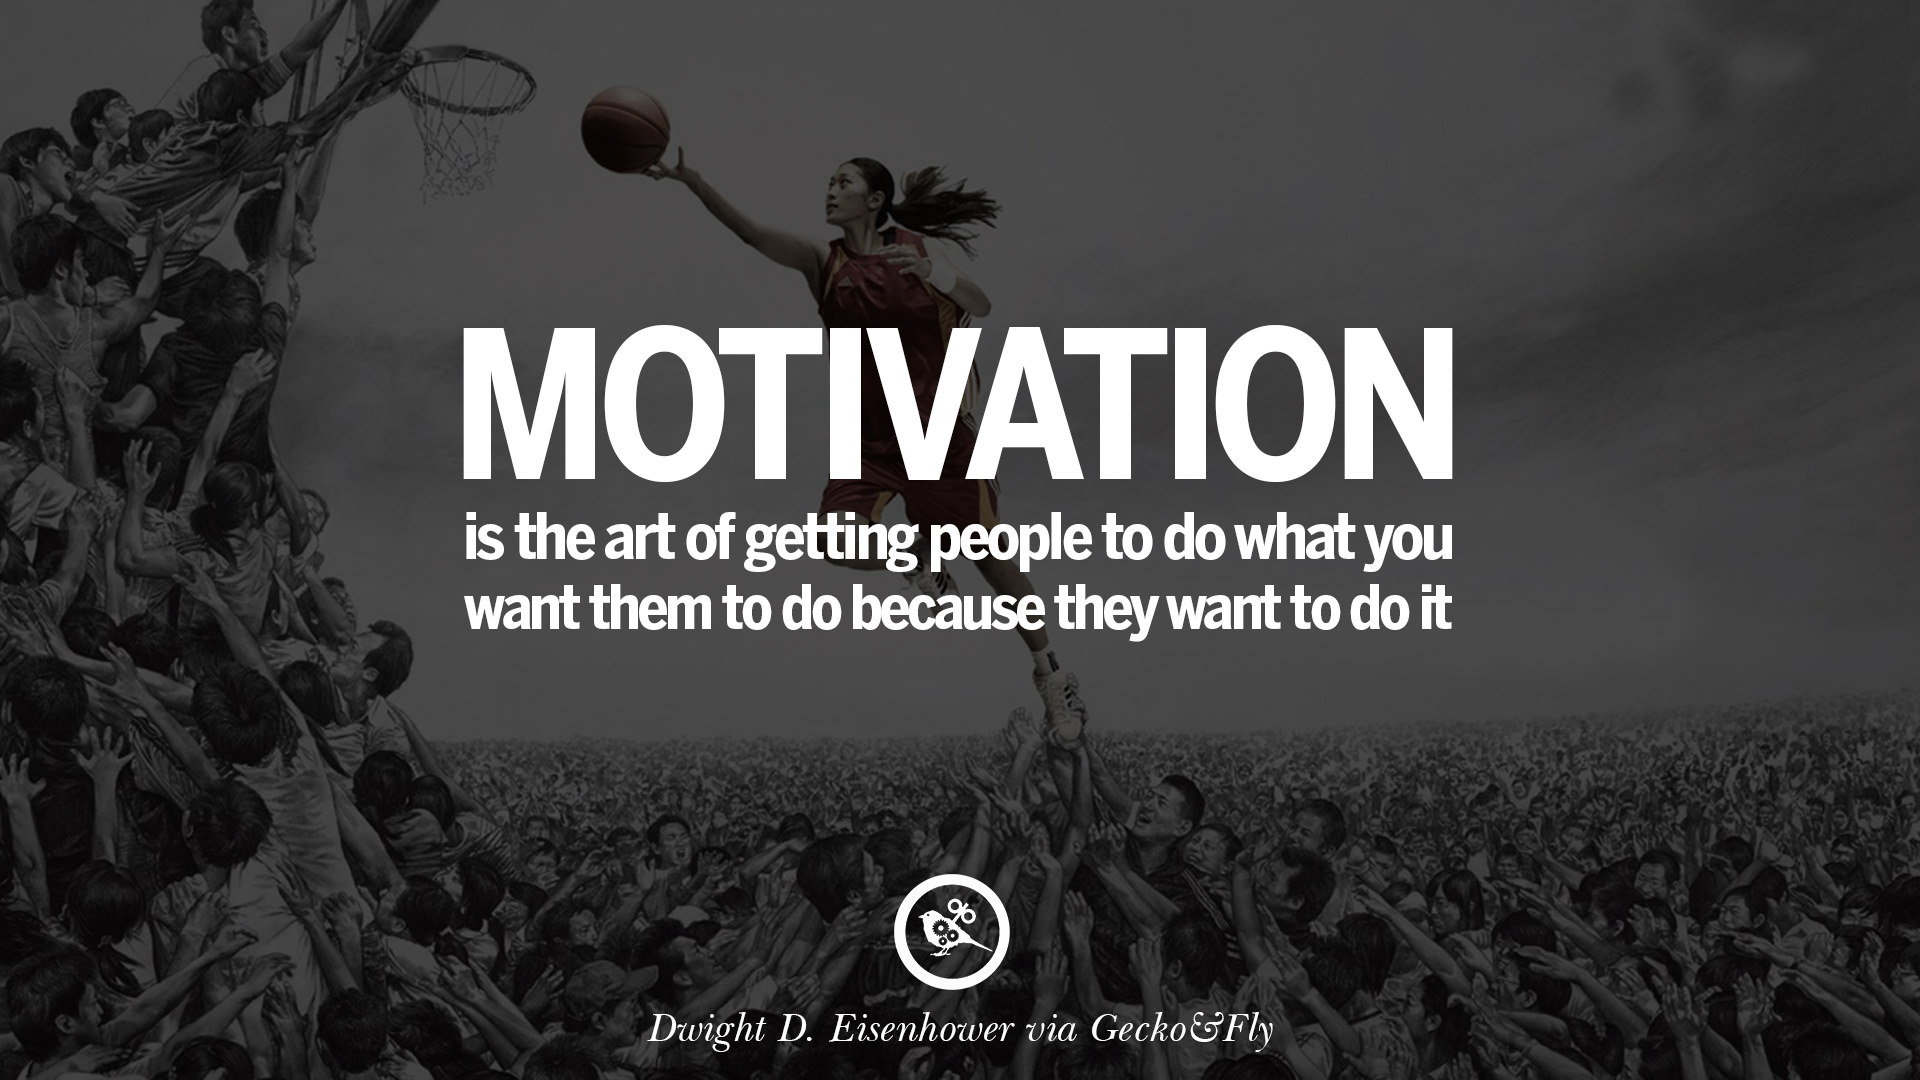 Inspirational Motivational Poster Quotes on Sports and Life Motivation    Underdog Quotes Tumblr